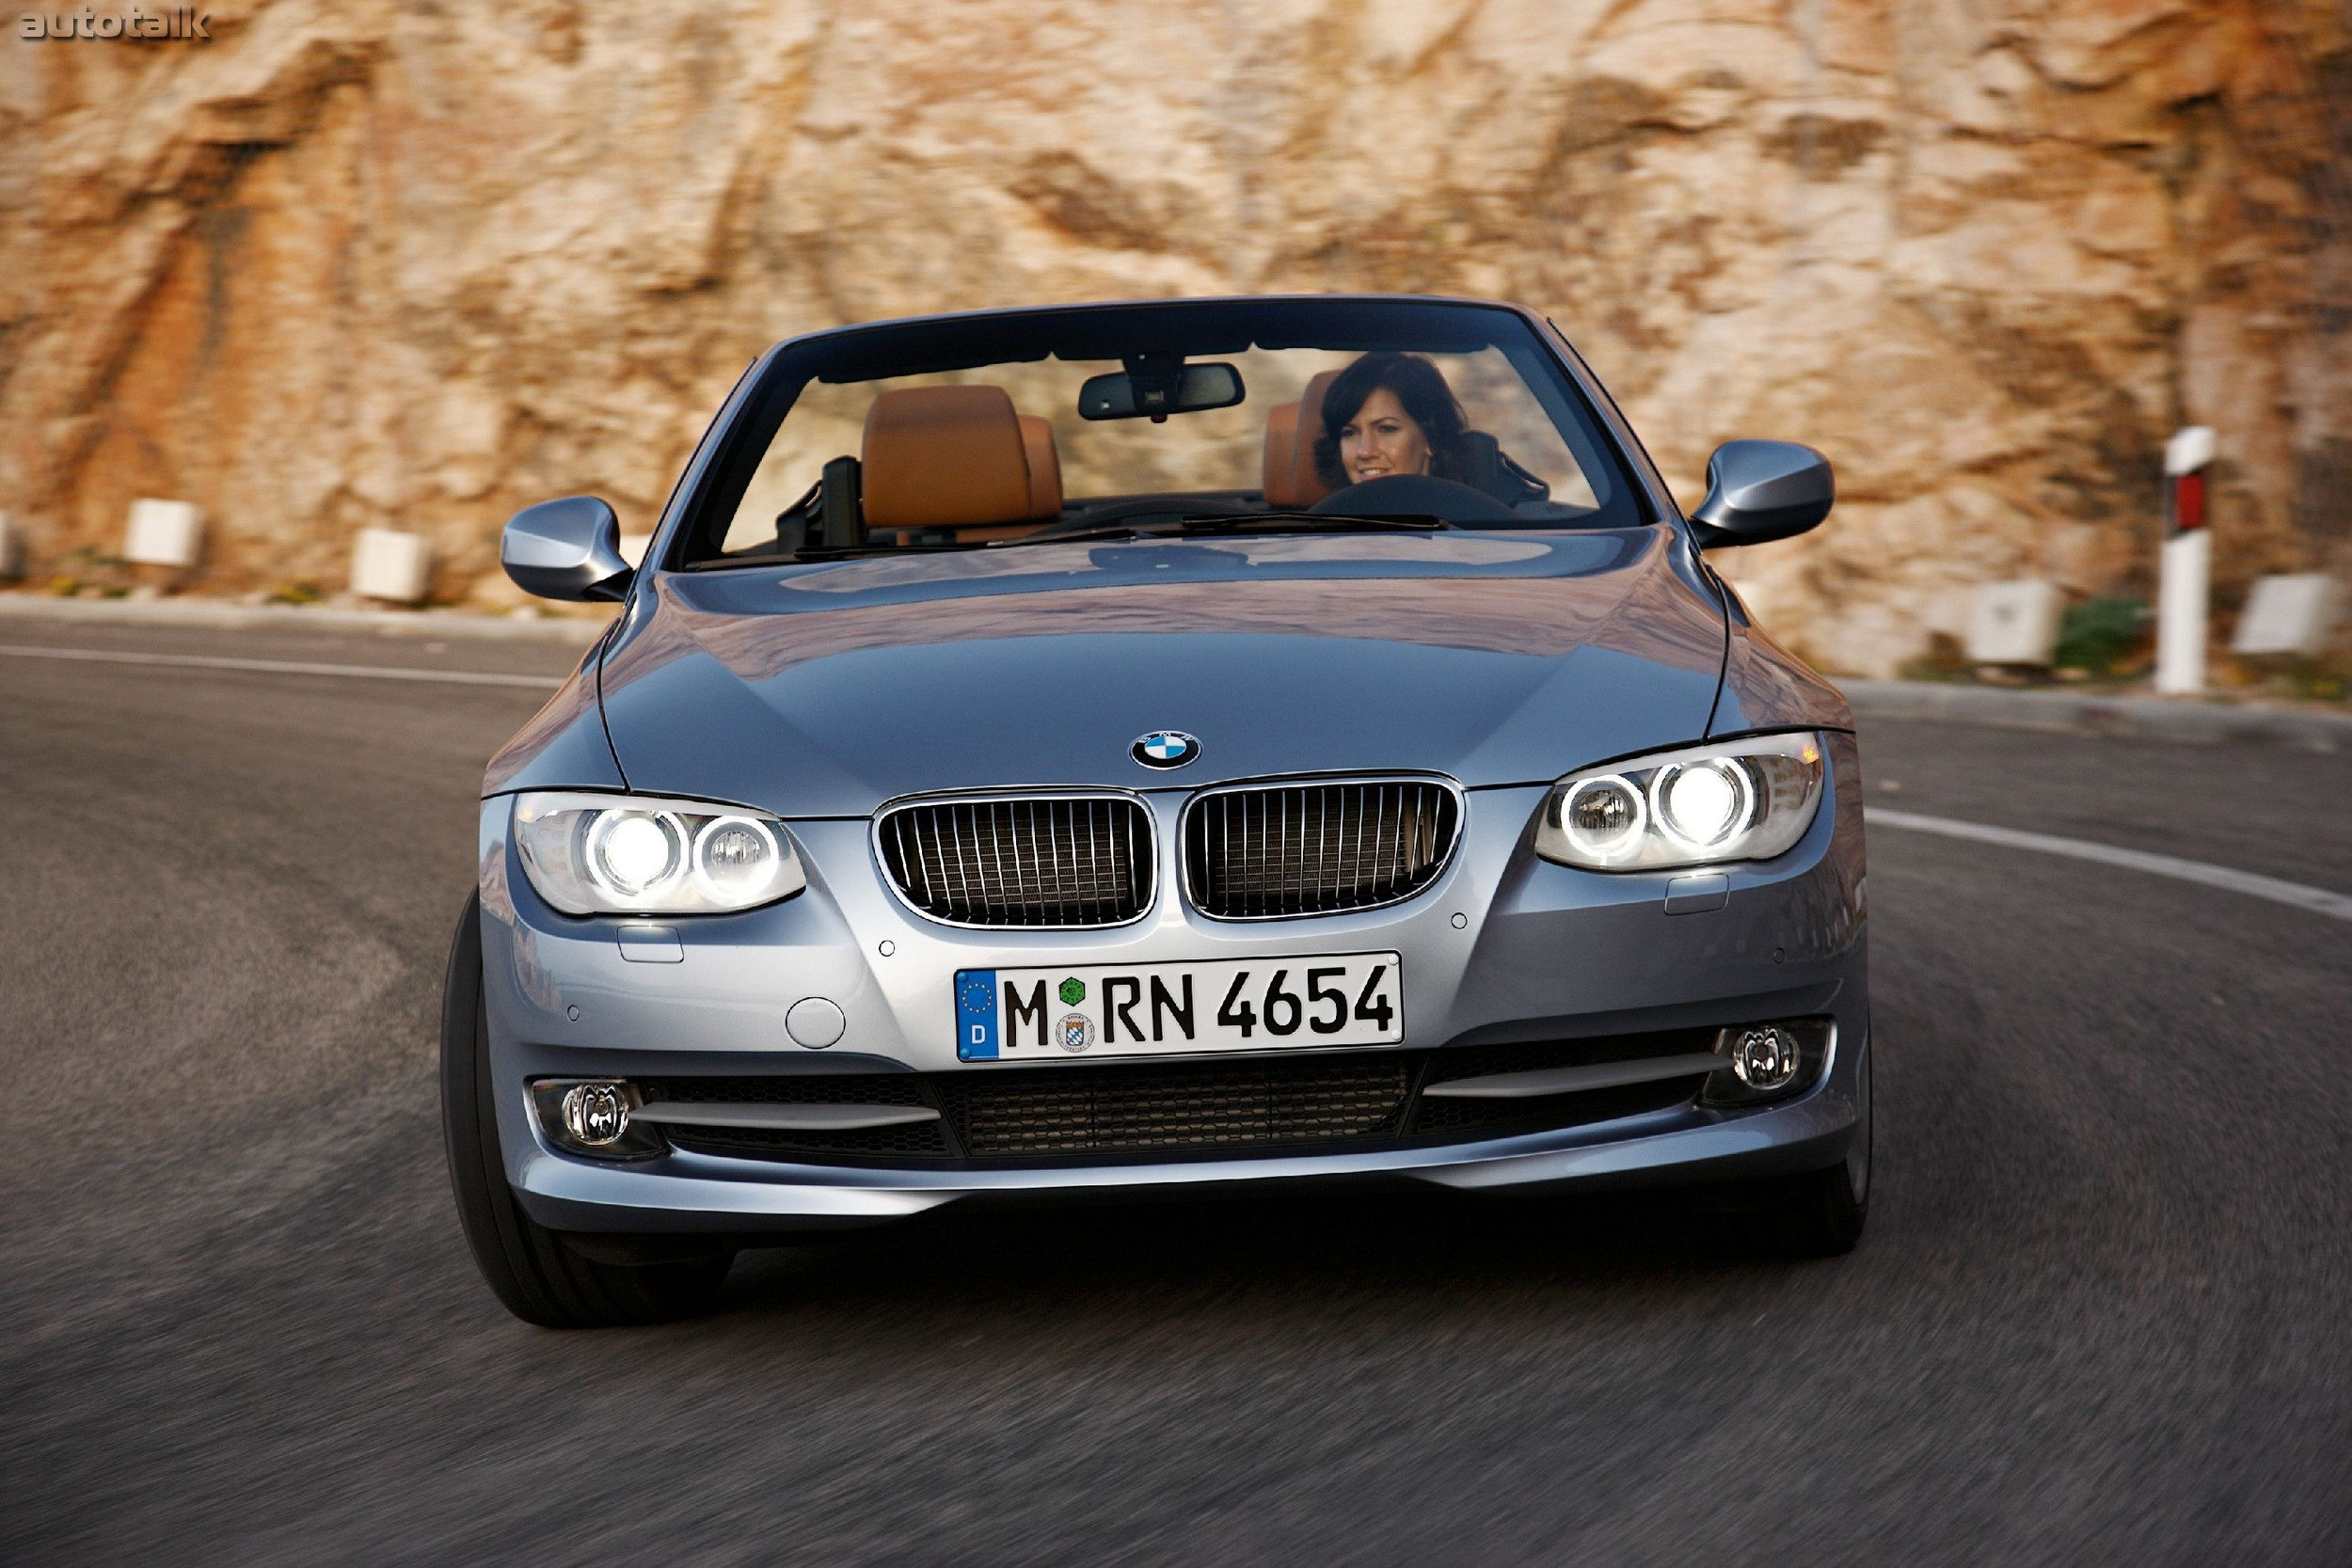 Bmw 3 series convertible front angle road  № 850458 загрузить